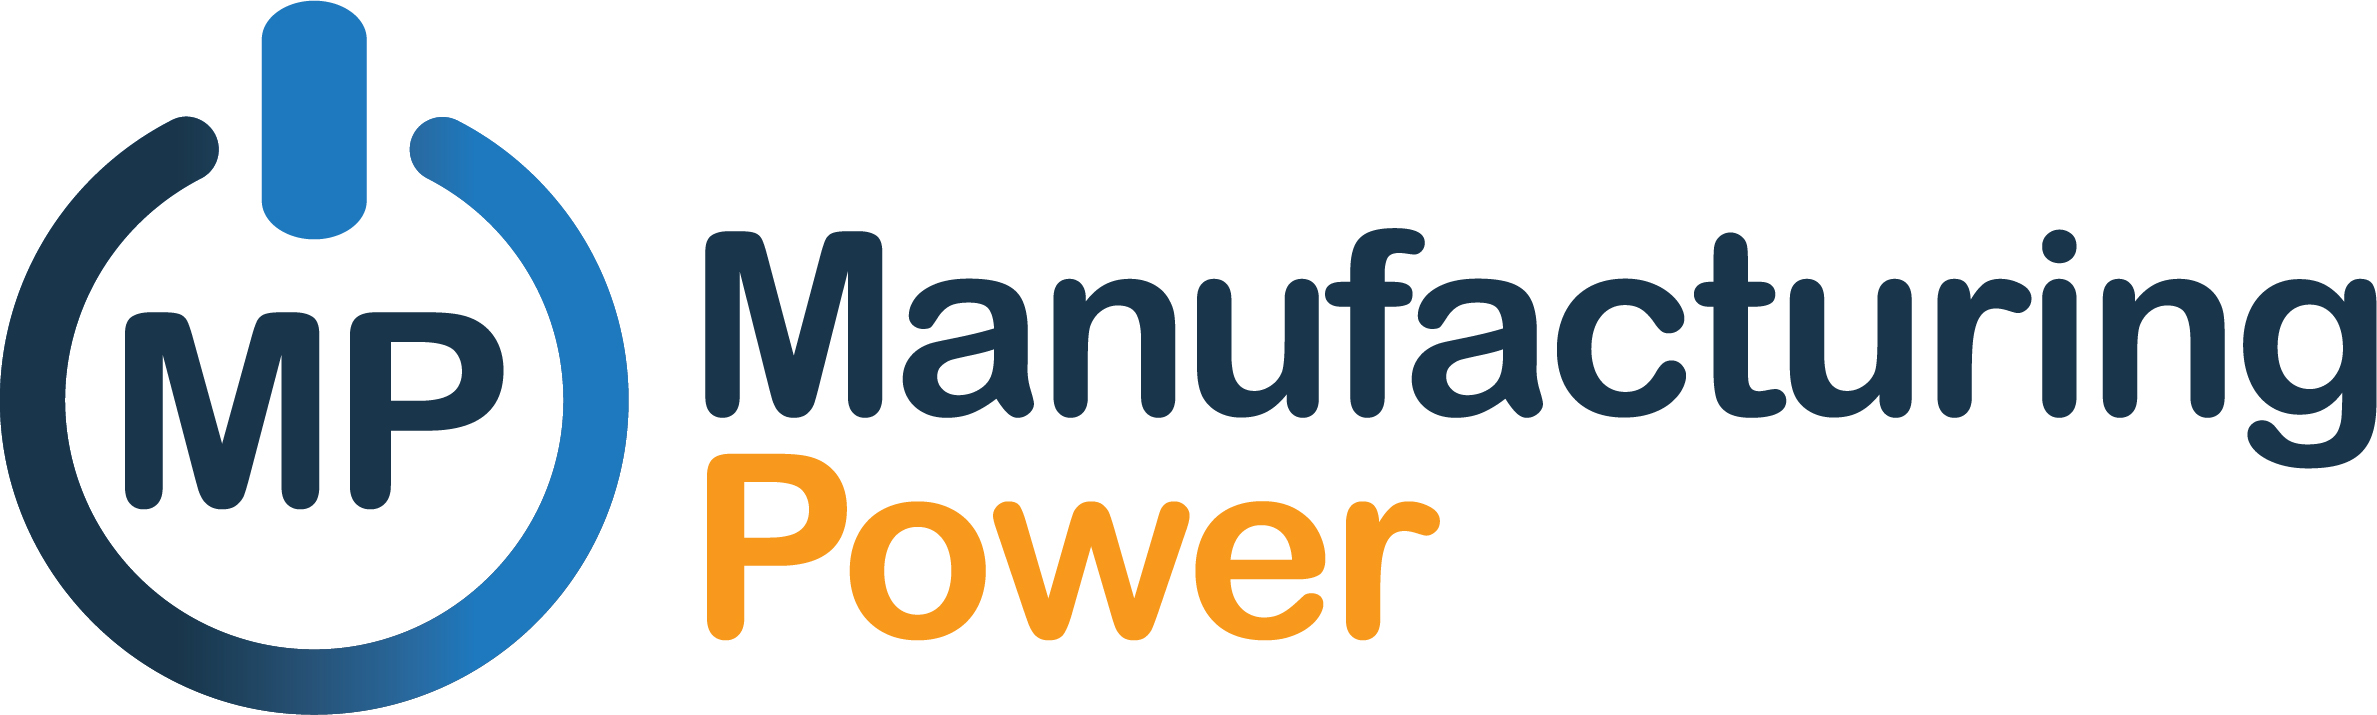 Mike Franz of ManufacturingPower Introduces Comparison Pricing to Small Manufacturers